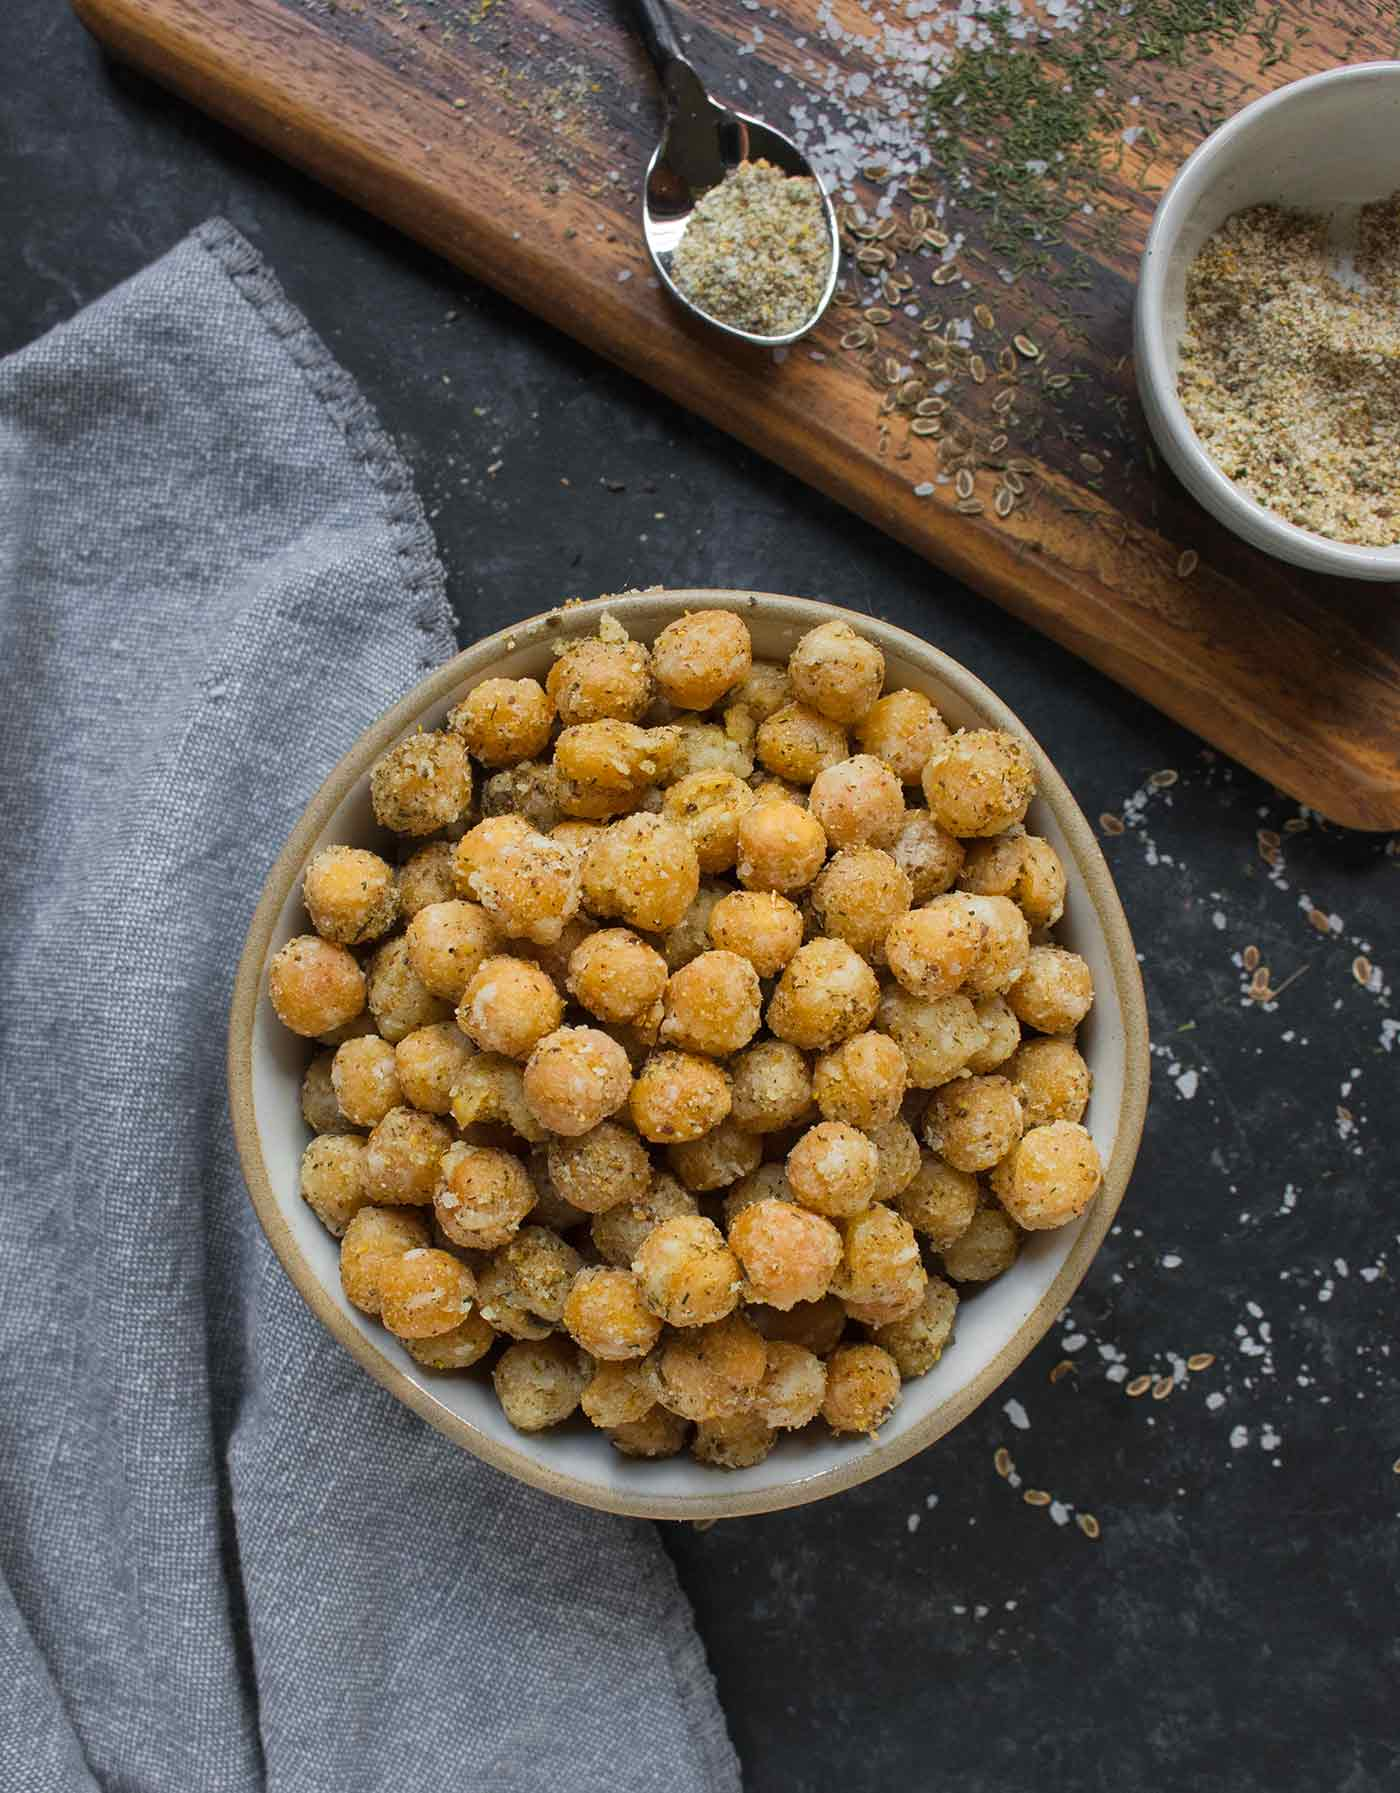 Crispy-fried Dill Pickle Chickpeas in a bowl, with seasonings